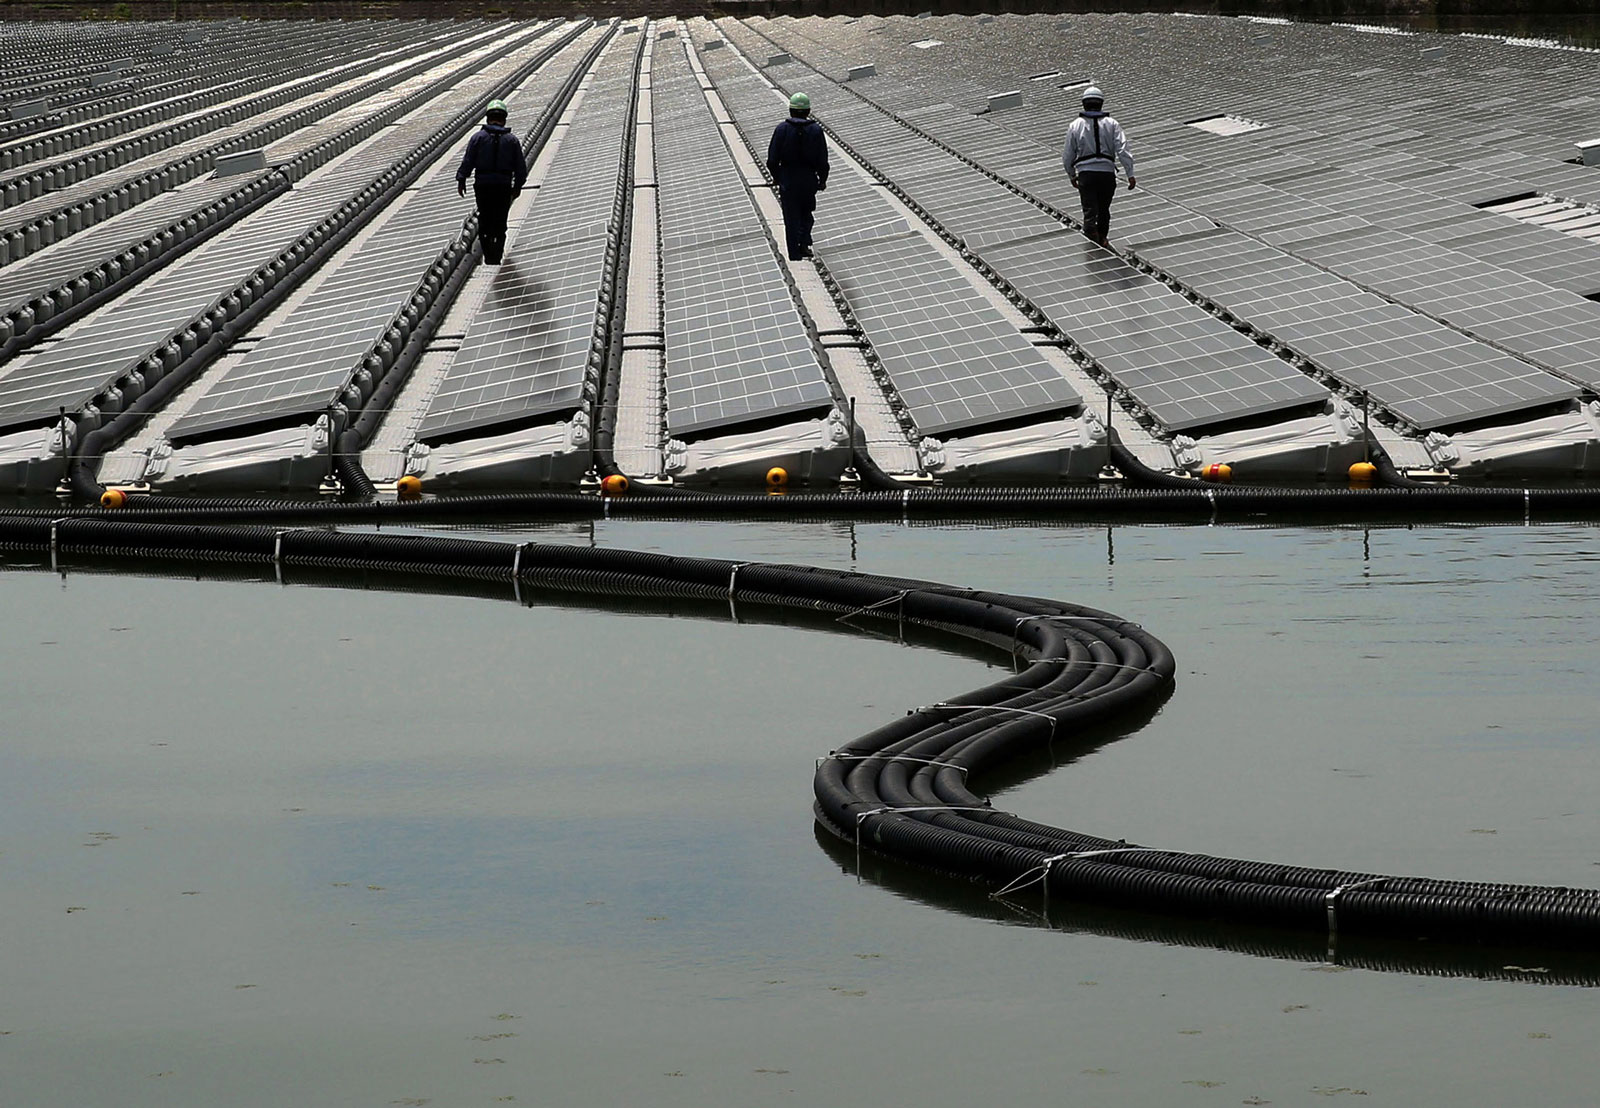 Workers walk between rows of solar panels at the 2.3-megawatt floating solar power station operated by Kyocera TCL Solar